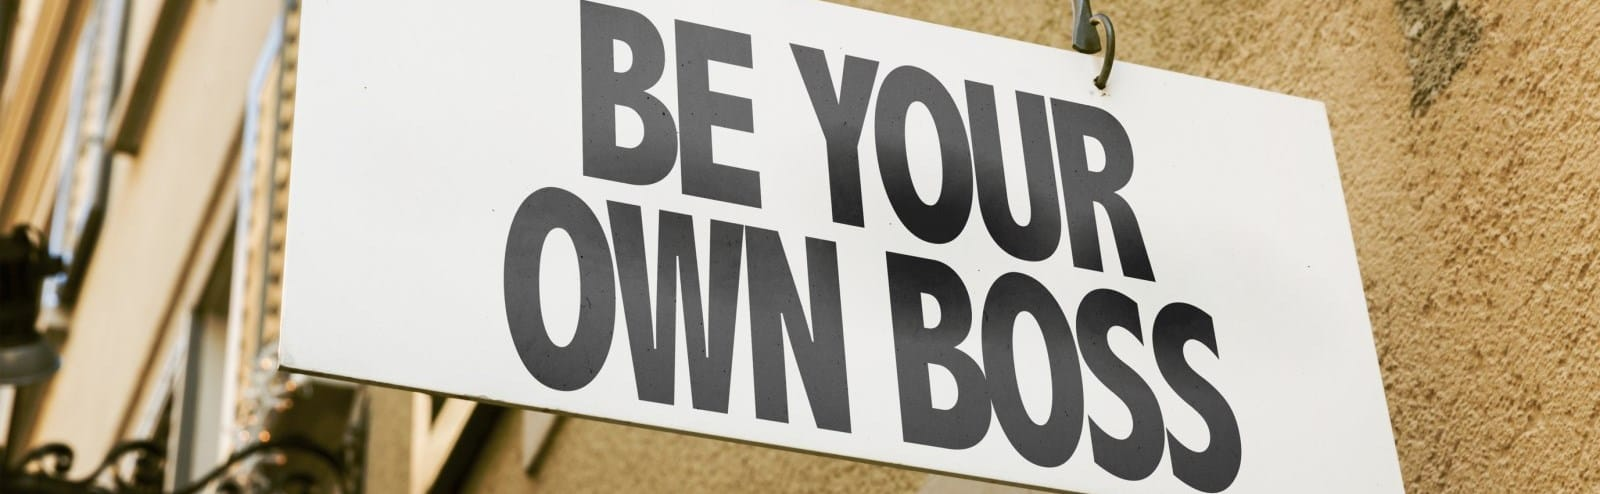 be your own boss sign